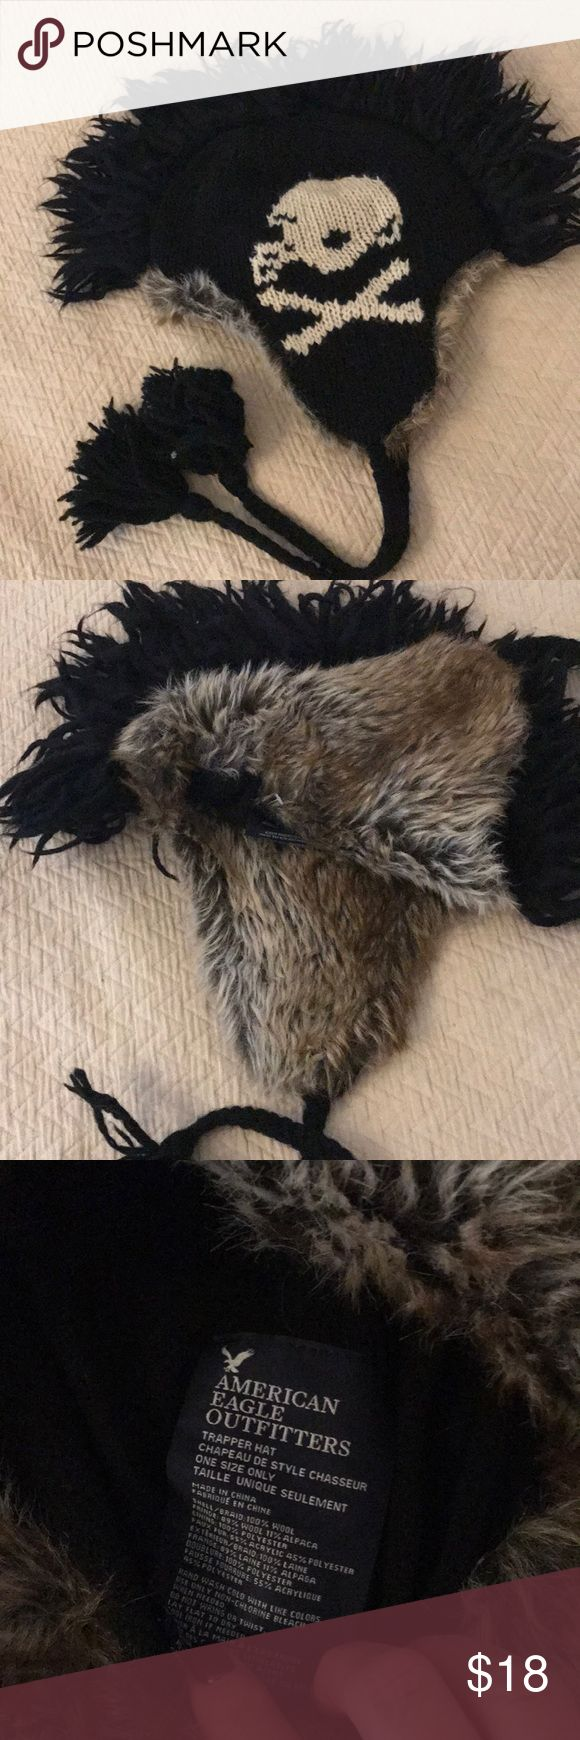 AMERICAN EAGLE OUTFITTERS trapper hat American eagle outfitter trapper hat. Faux fur interior, wool exterior black with football logo and Mohawk style. Tassel ties. Very warm and covers ears. Make an offer! American Eagle Outfitters Accessories Hats